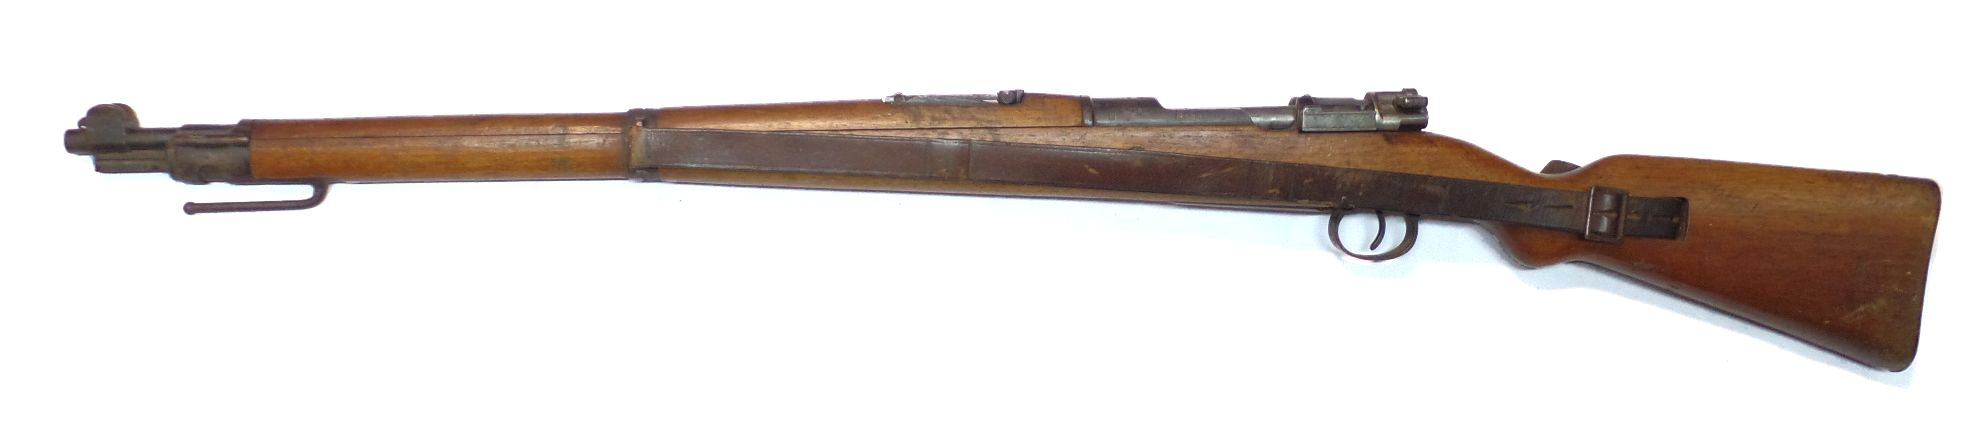 MAUSER K98A calibre 8x57IS